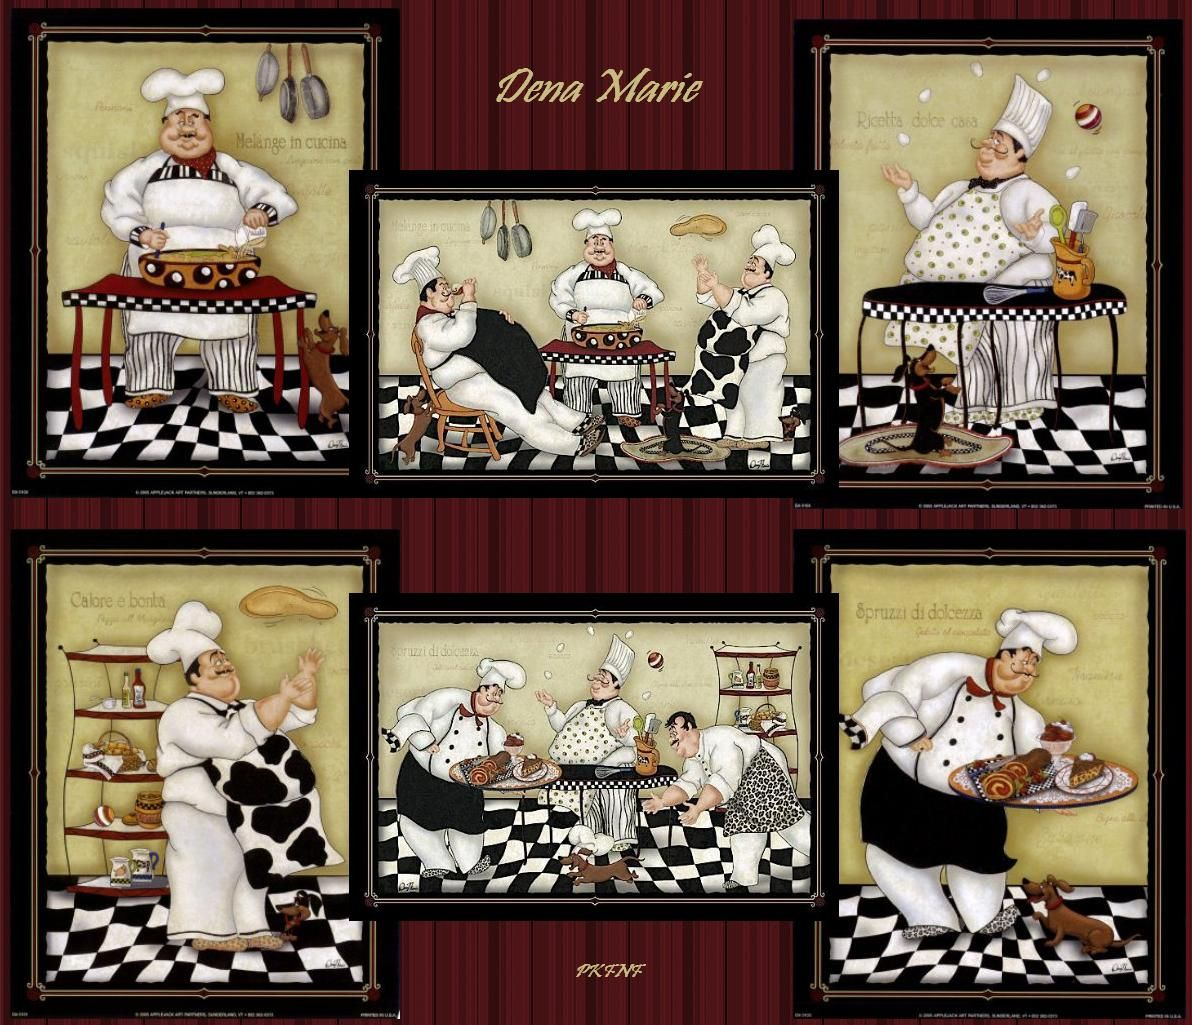 Chef Guy Kitchen Decoration: Pin By Talin Cantaş On CHEF DECUPAGE